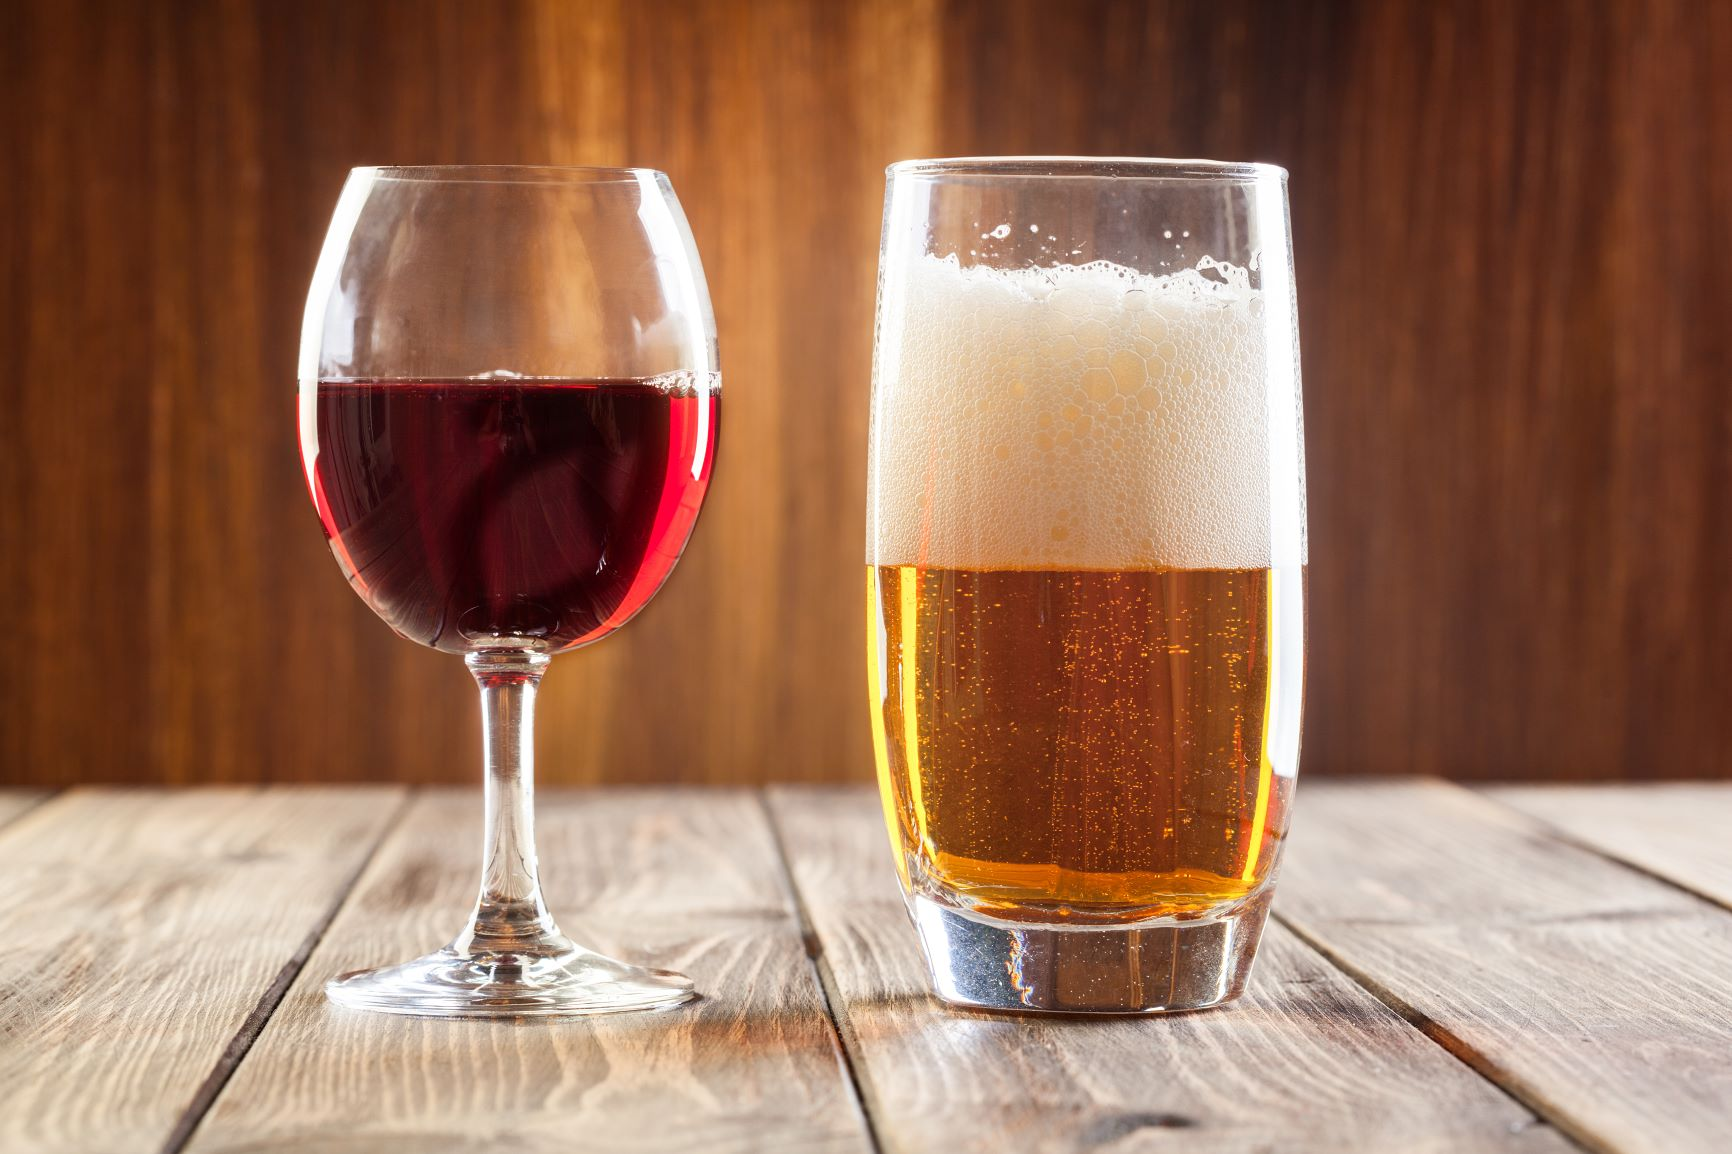 UPDATE FOR ONTARIO MEMBERS ON BEER AND WINE